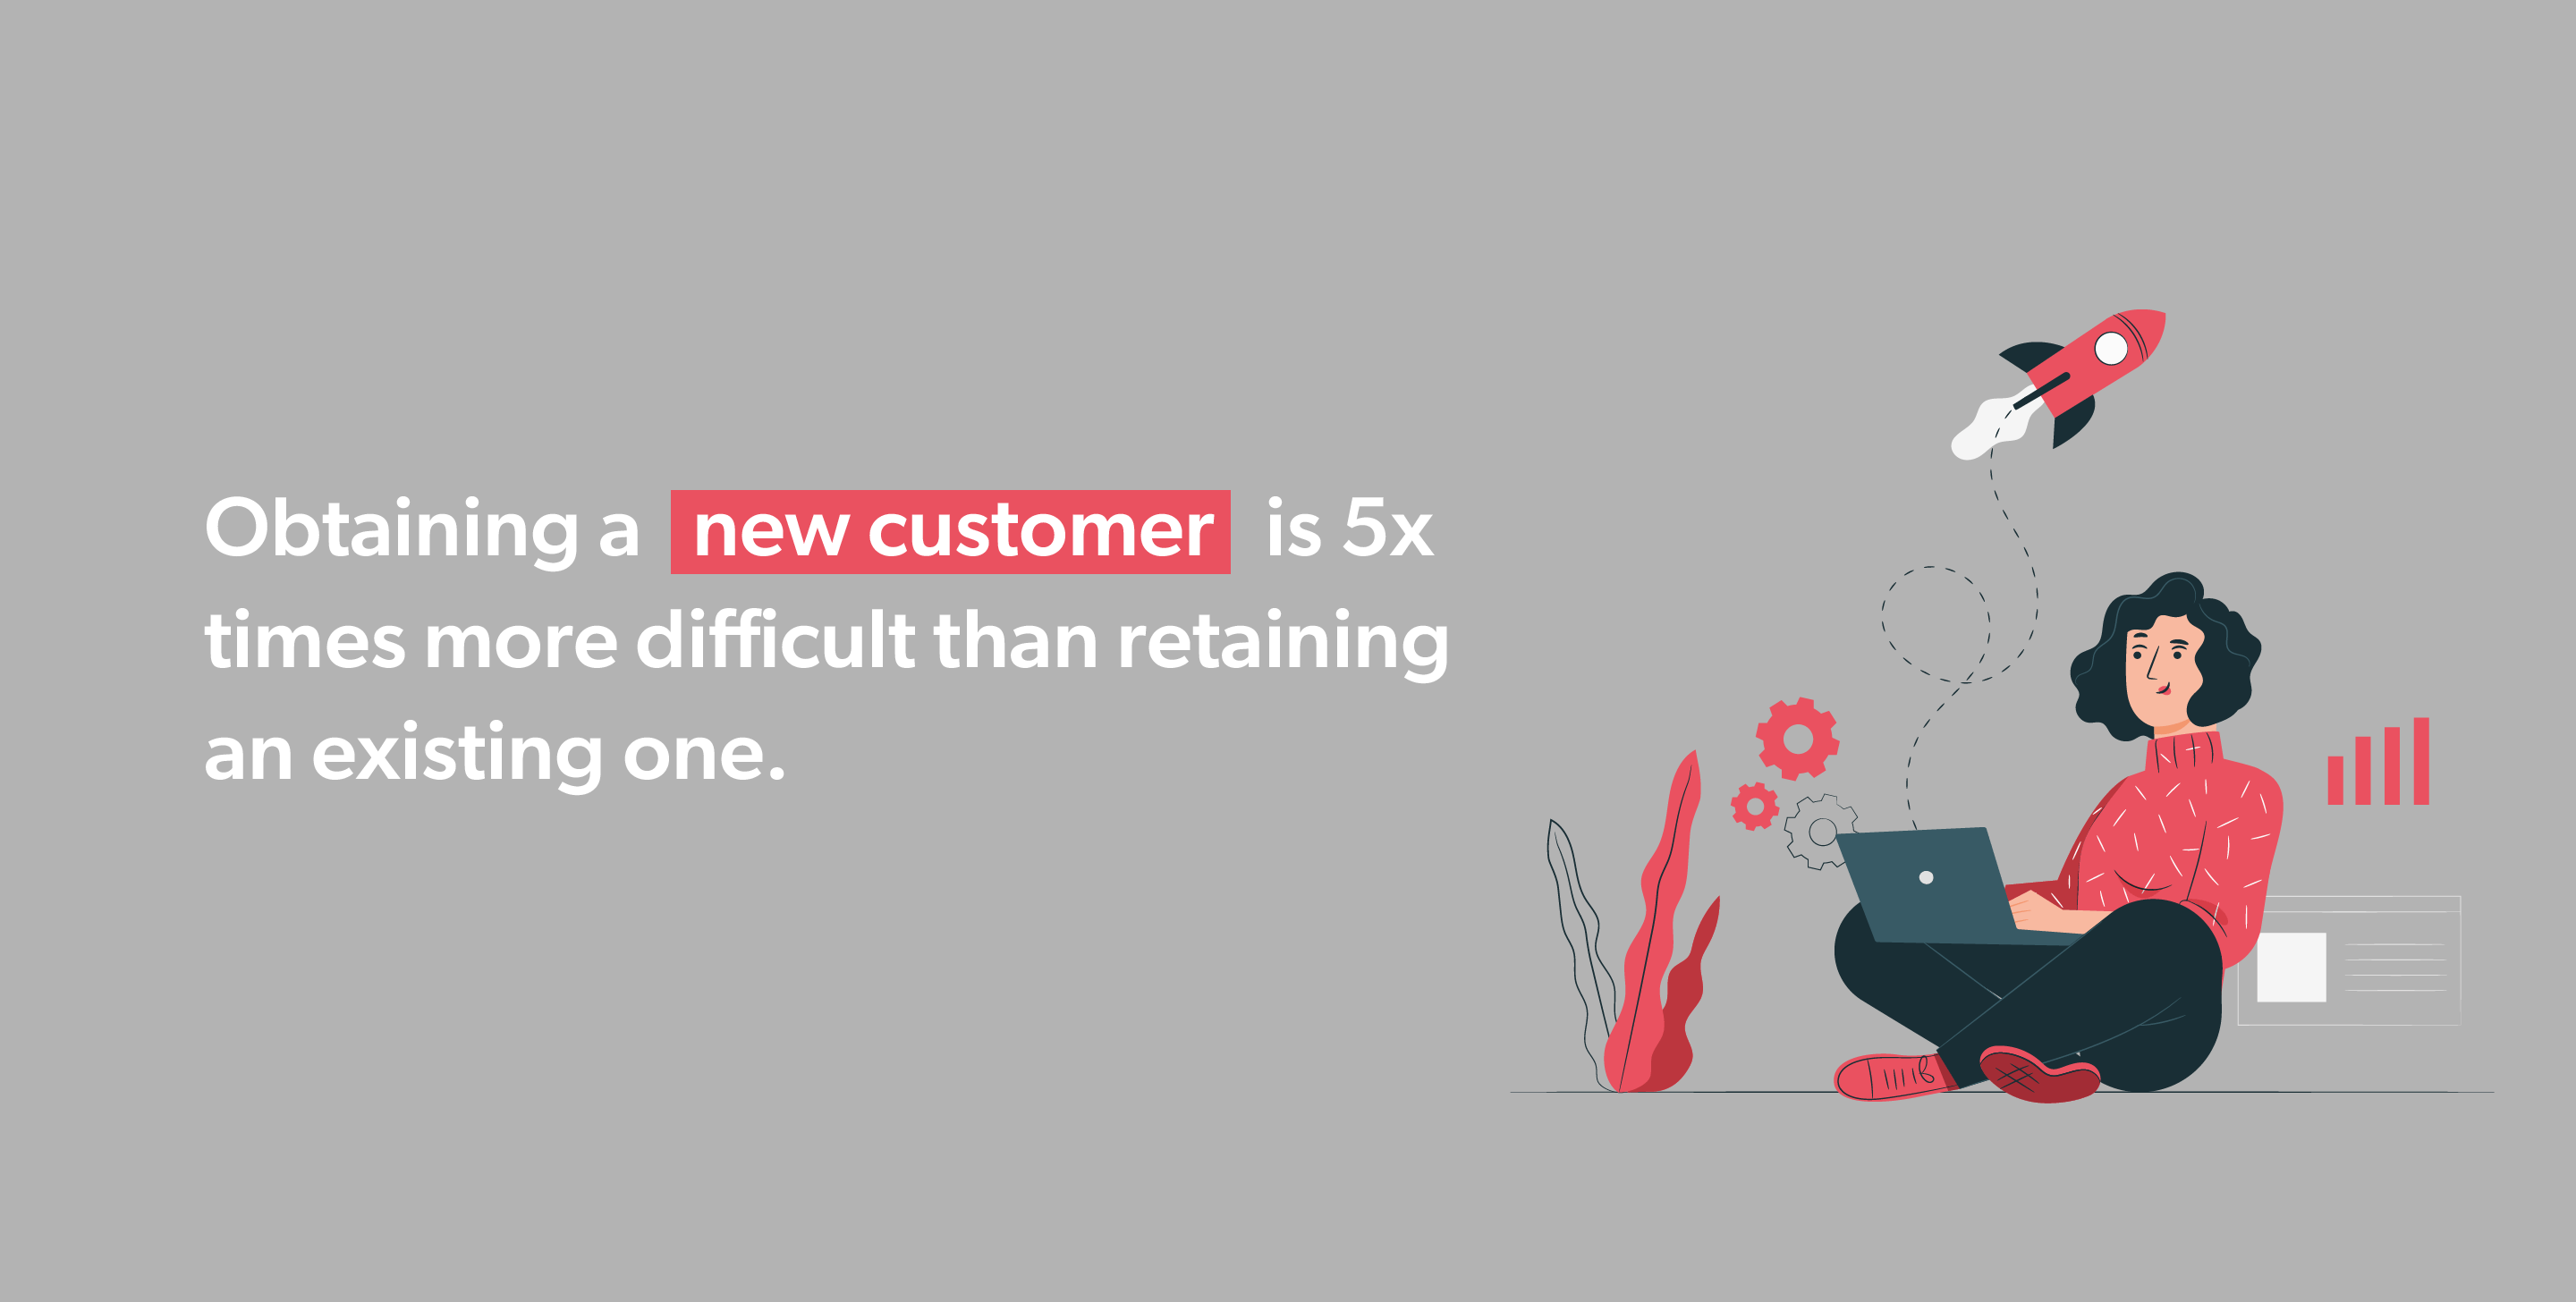 Obtaining a new customer is 5x times more difficult than retaining an existing one.